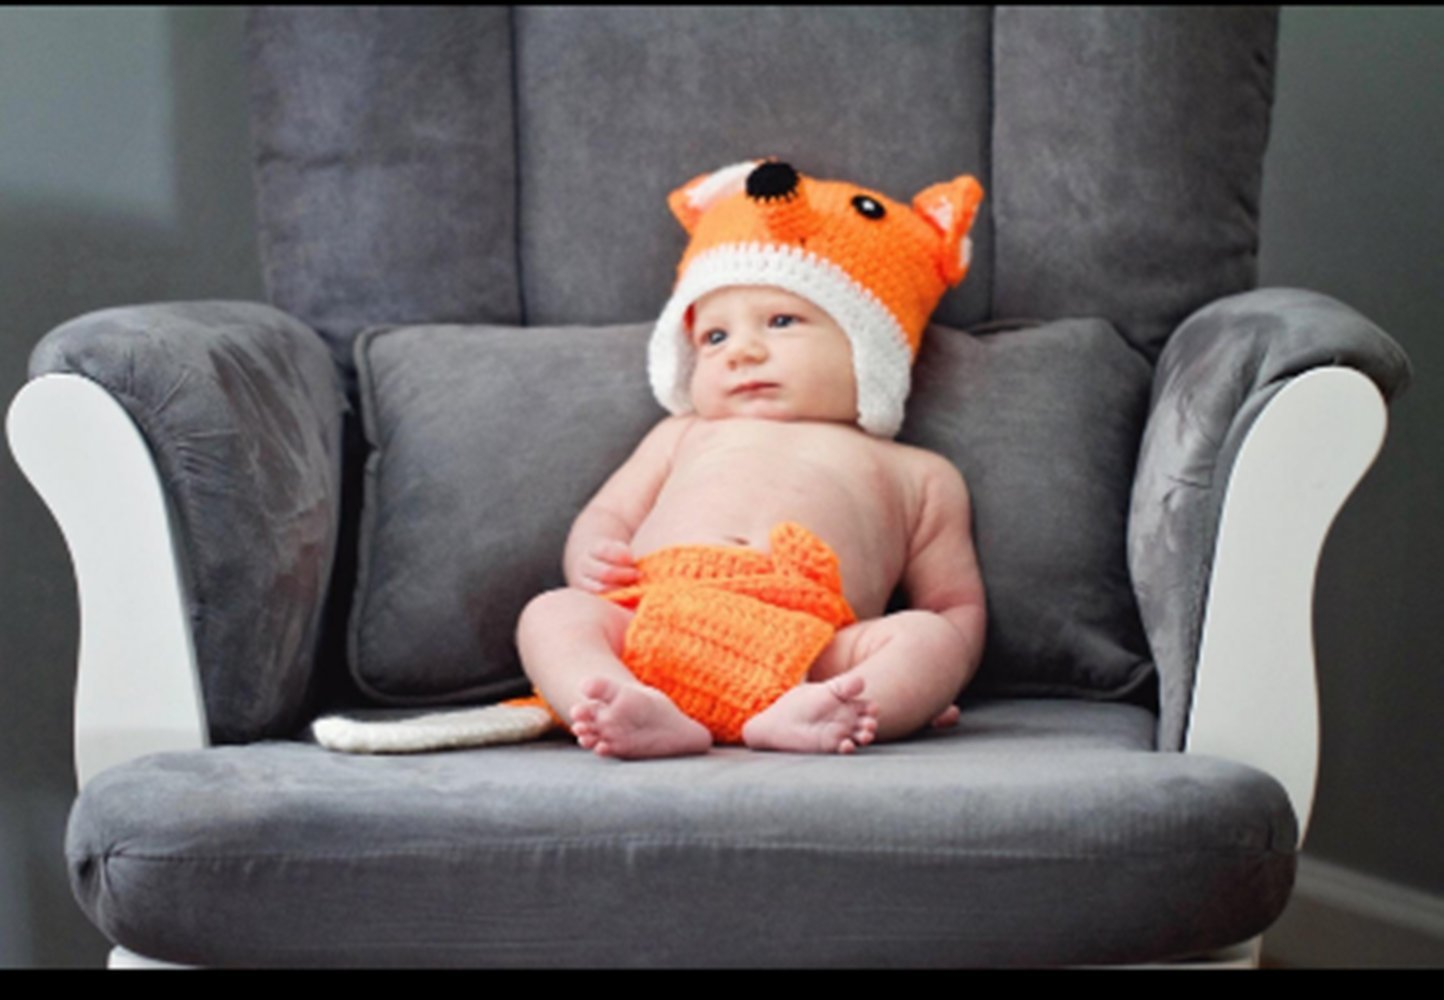 Eyourhappy Newborn Baby Handmade Crochet Knitted Photography Props Fox Hat Diaper Pant Outfit by Eyourhappy